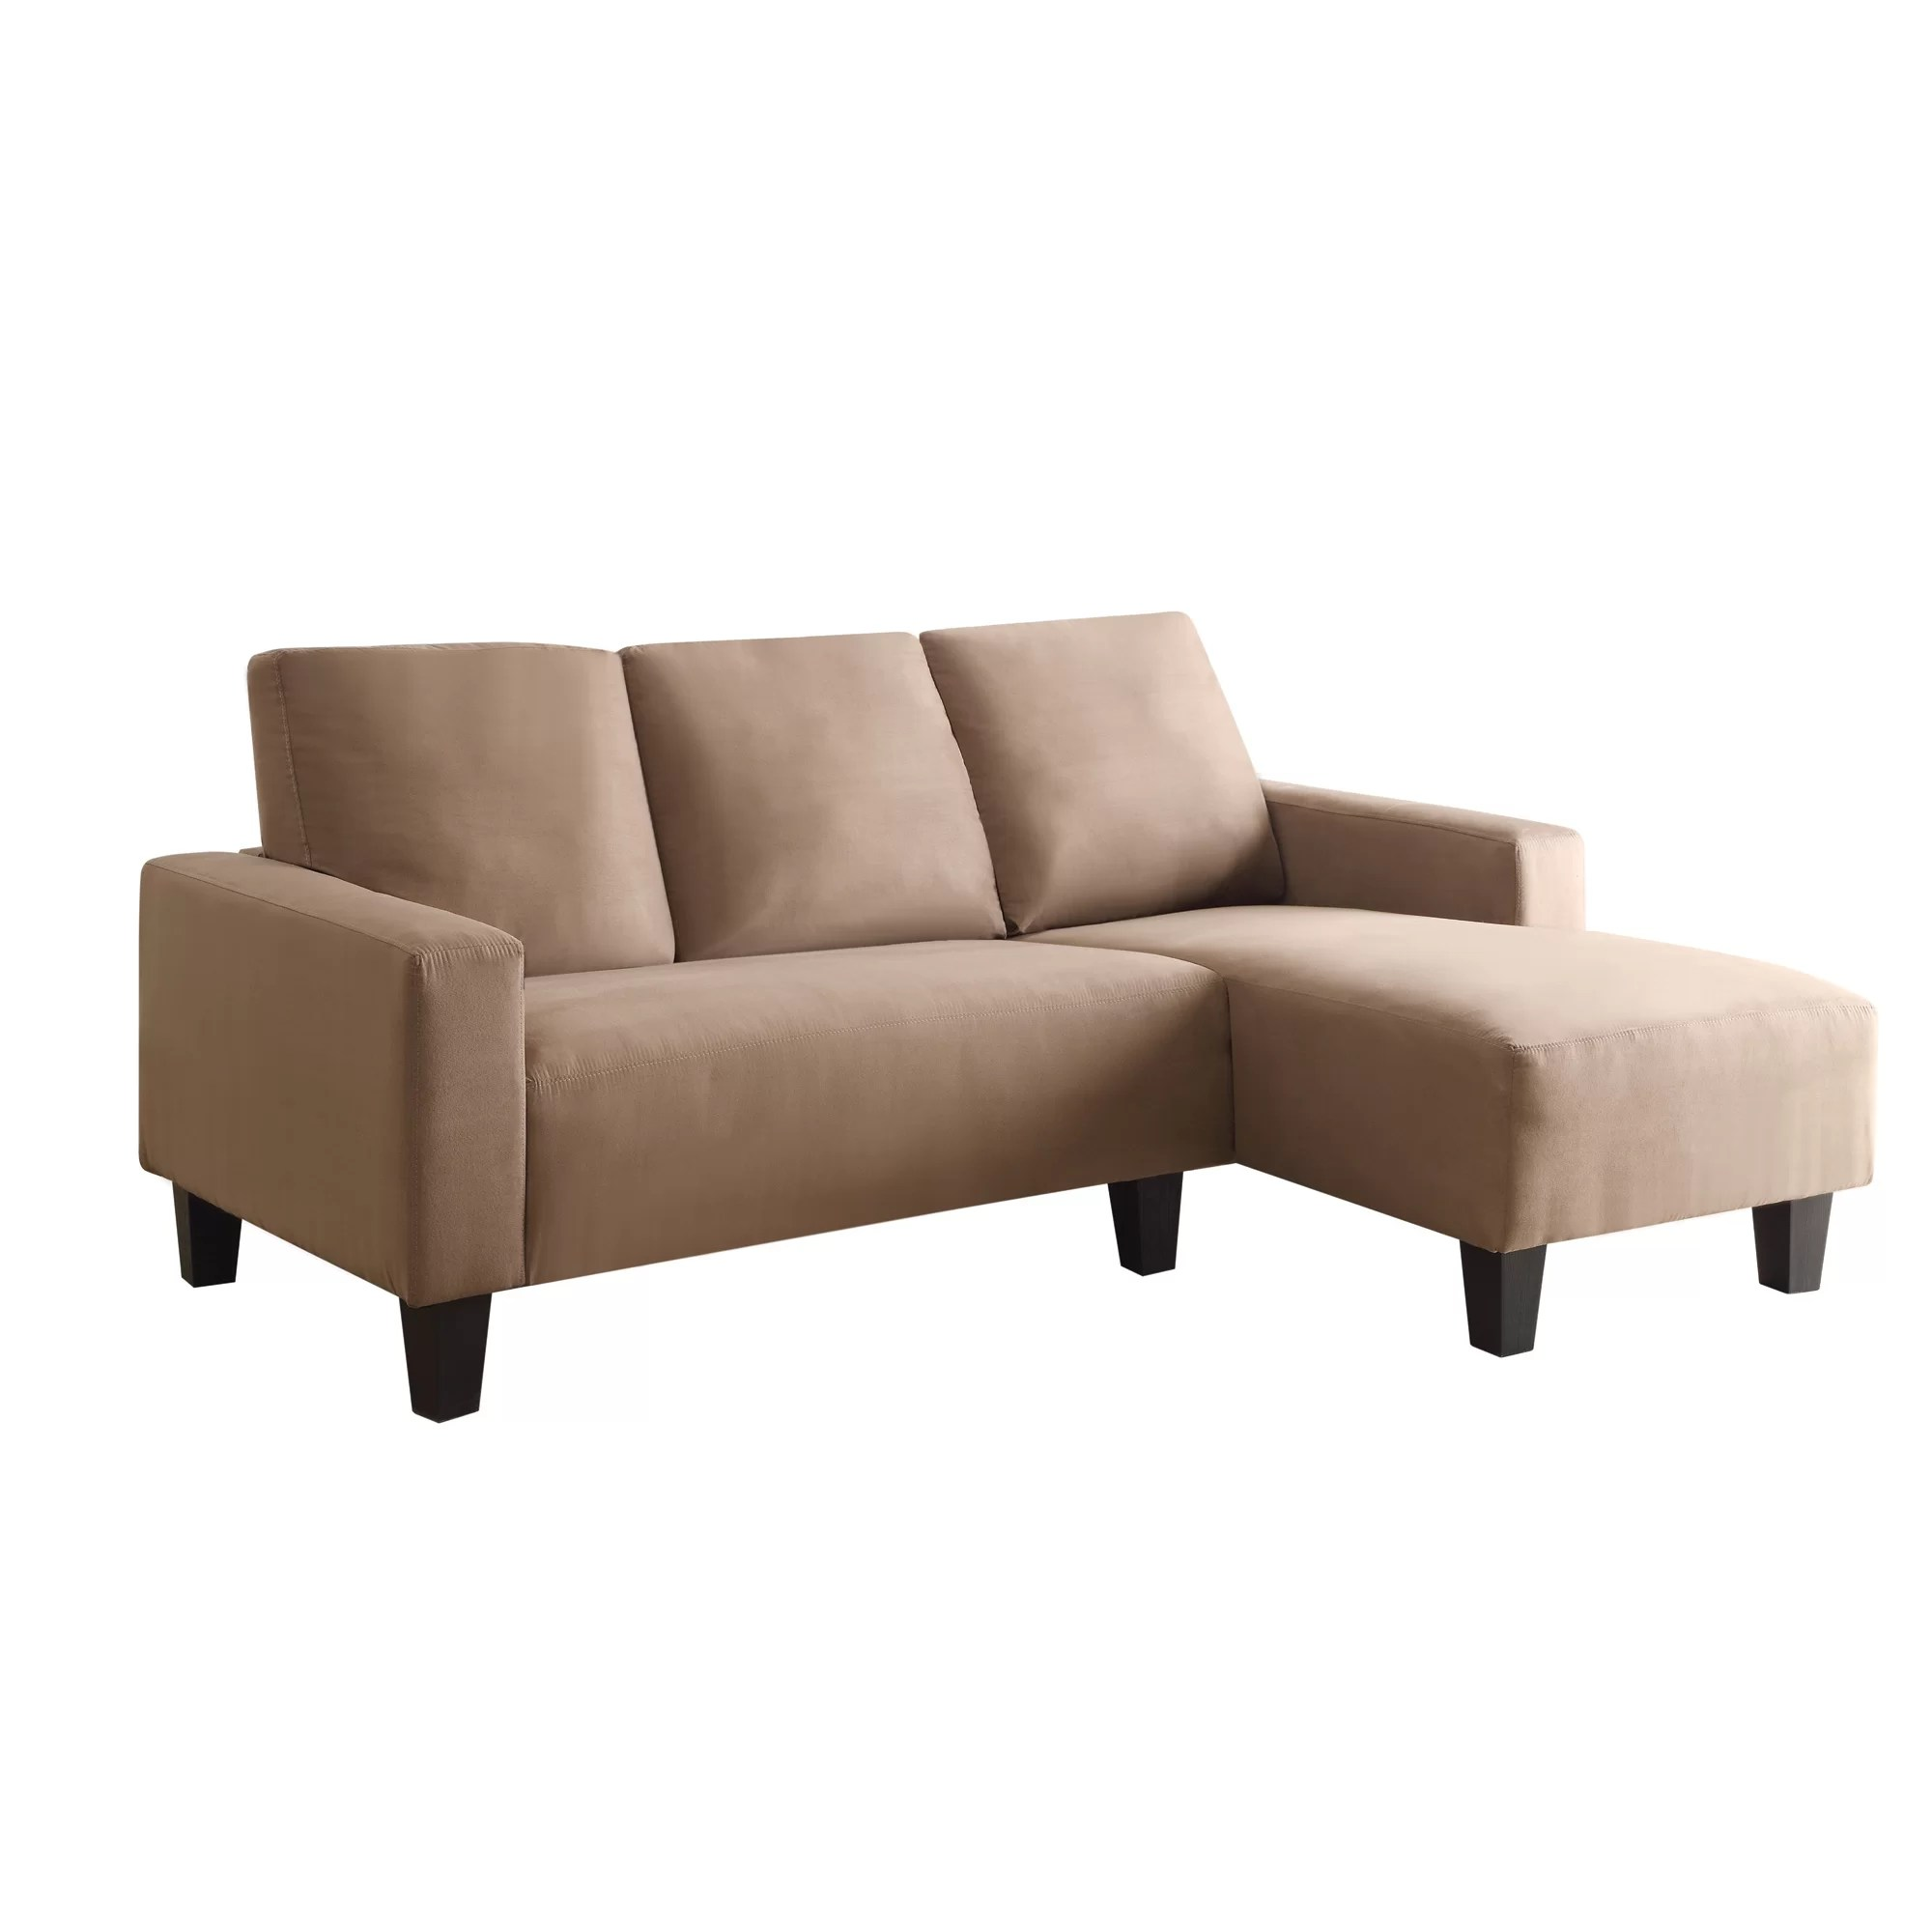 sofas at wayfair seattle wildon home  sectional sofa and reviews